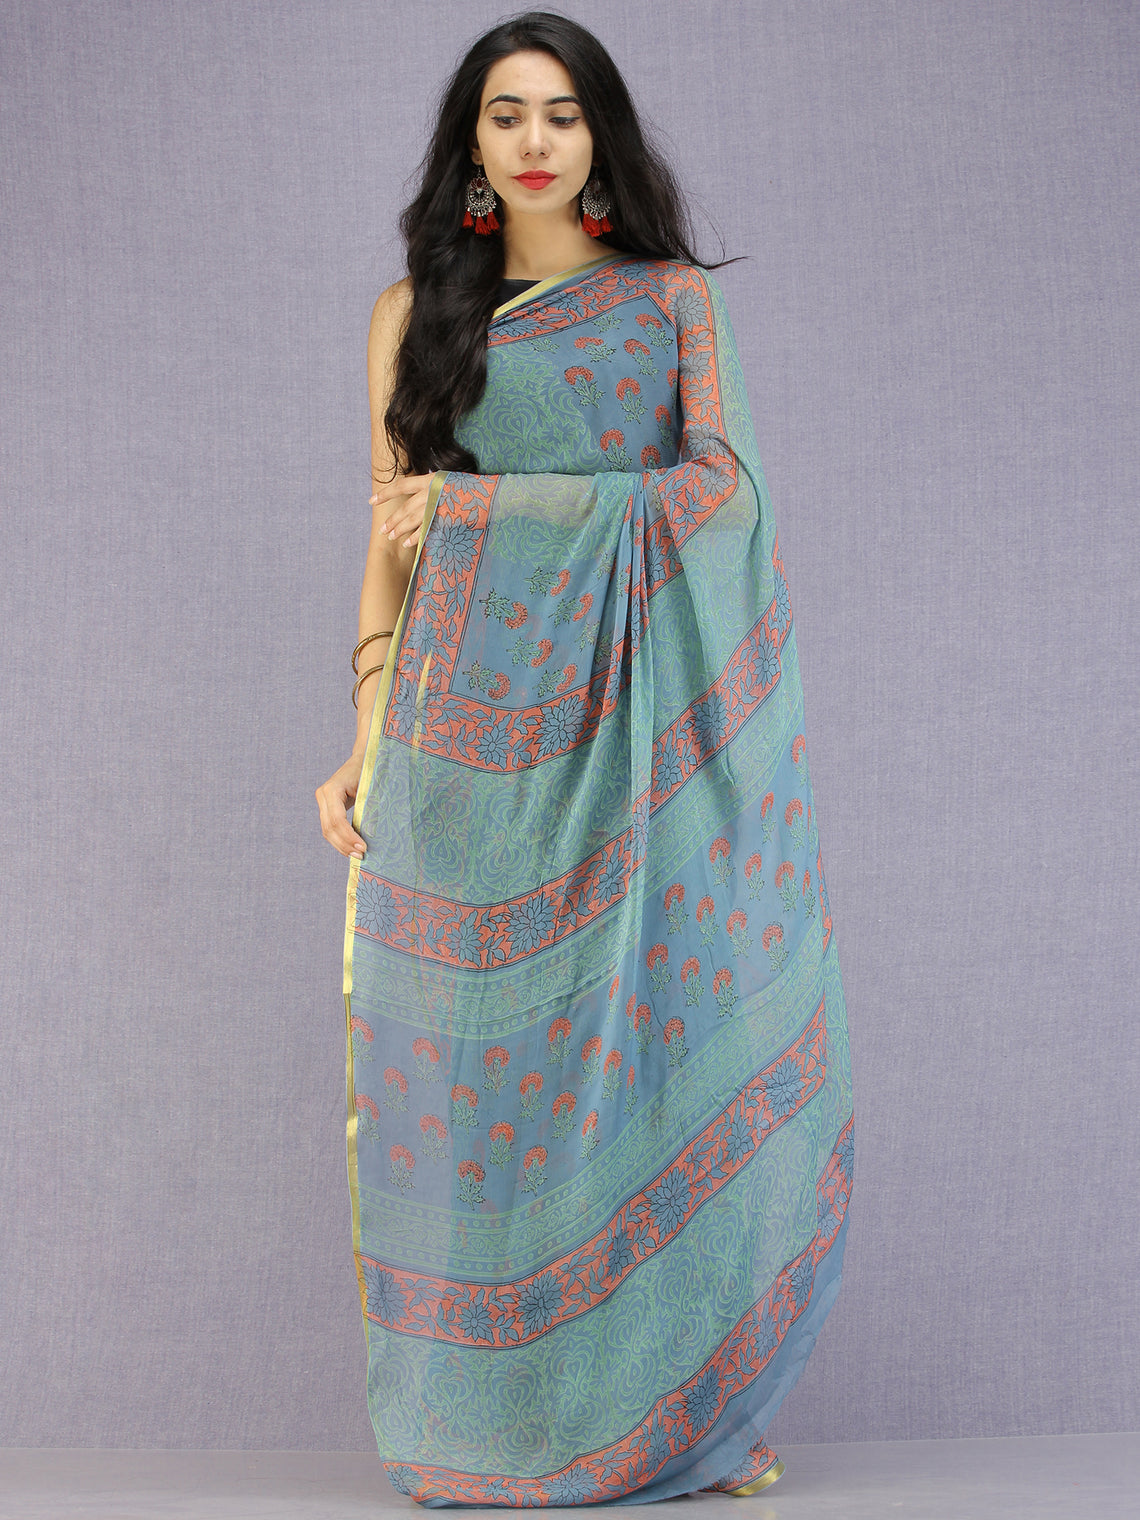 Steel Blue Coral Green Hand Block Printed Chiffon Saree with Zari Border - S031704593